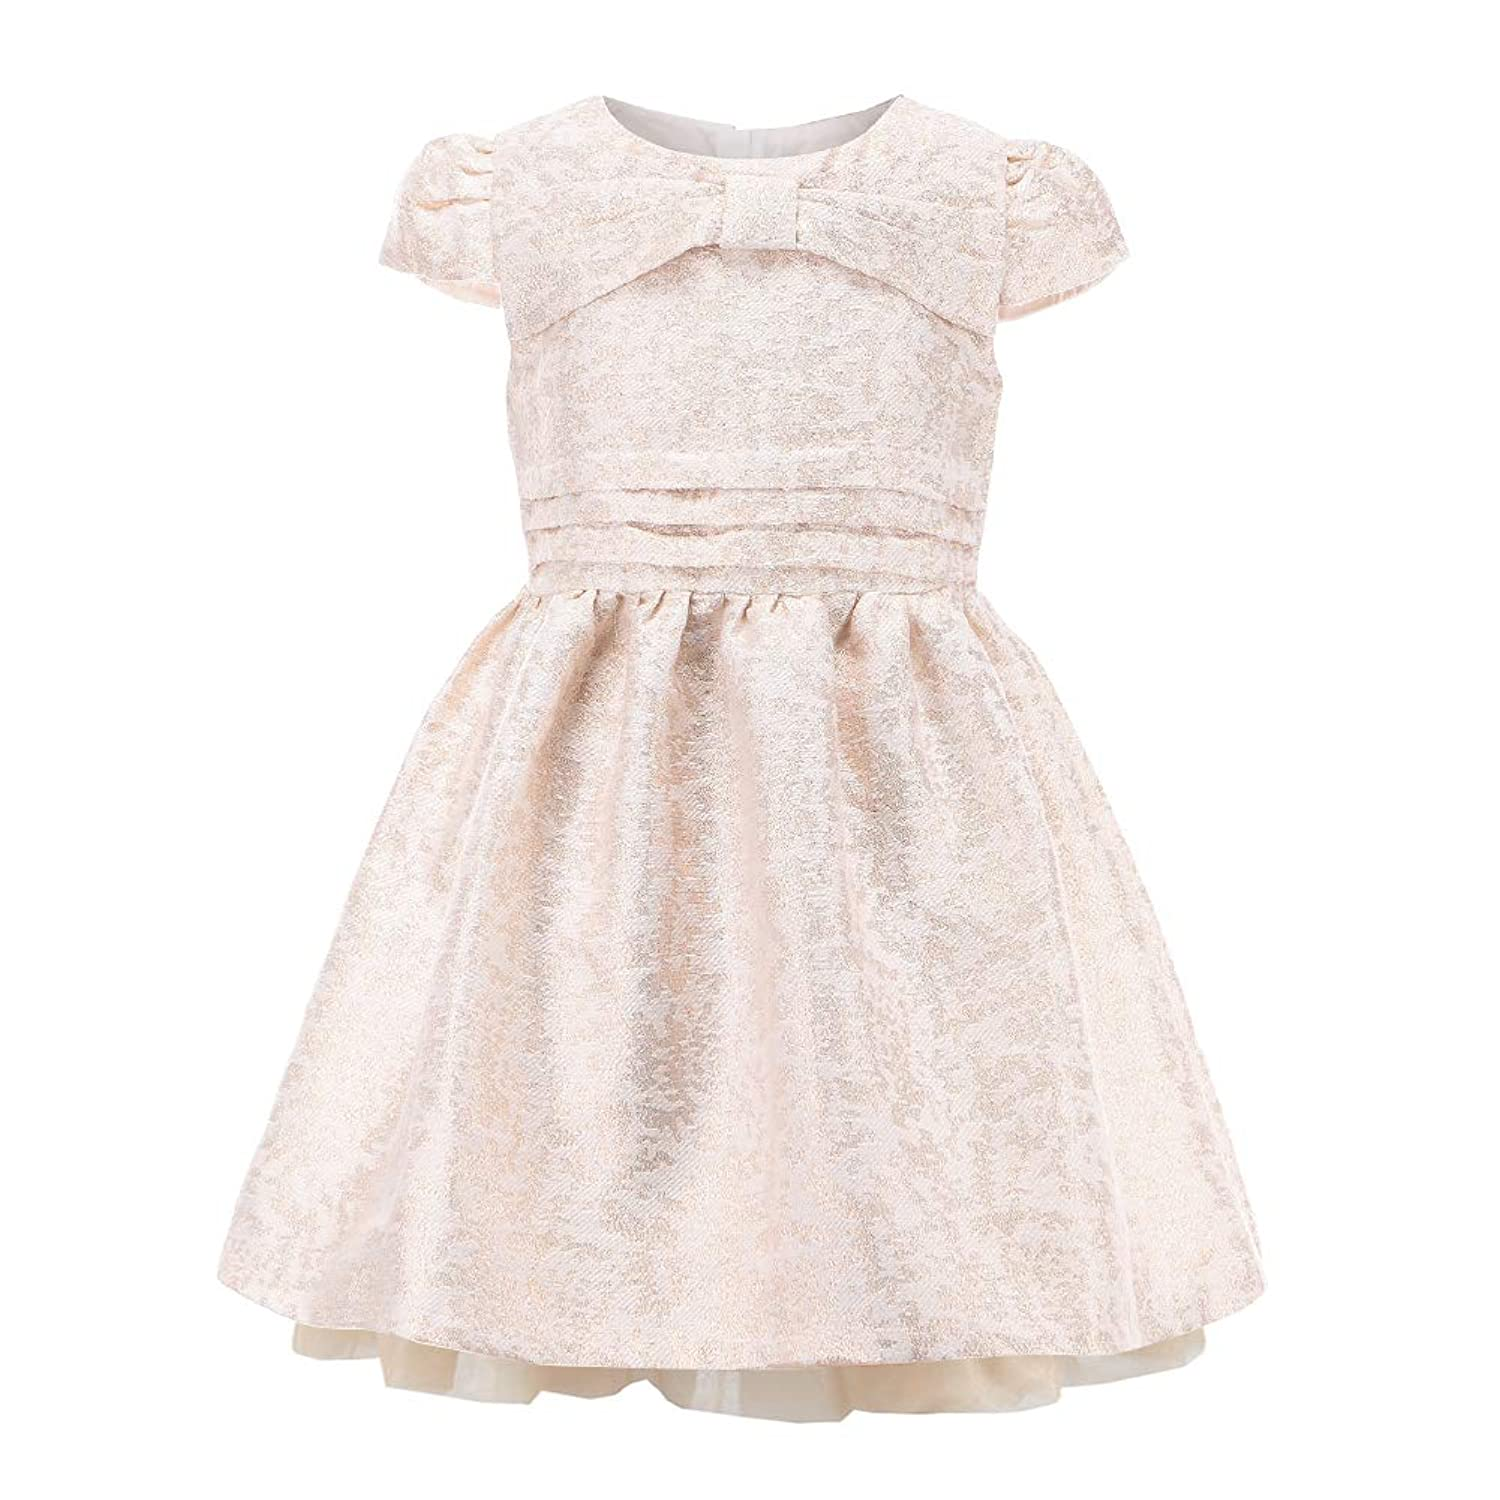 242cc8260 Top1: Champagne Gold Flower Christmas Girls Princess Party Dresses for Kids Girl  Clothes Dress 3-10 Years Old